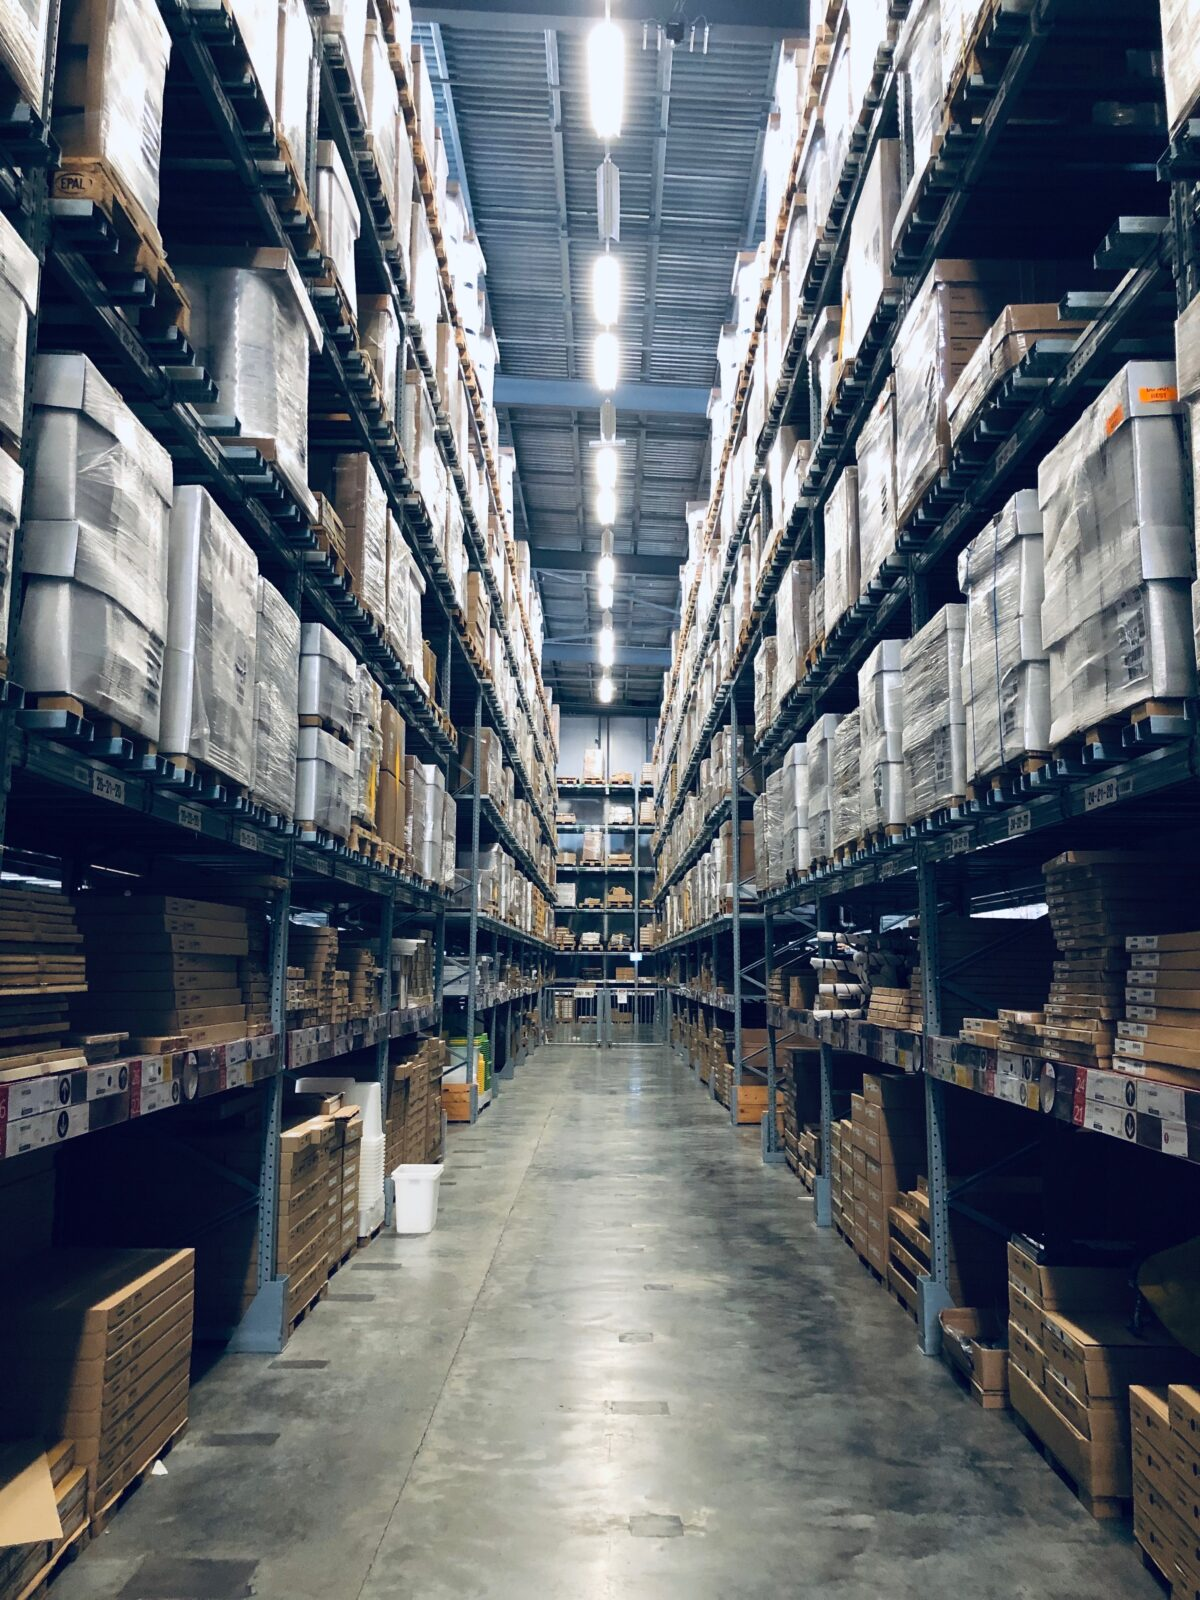 On-Demand vs. Holding Inventory